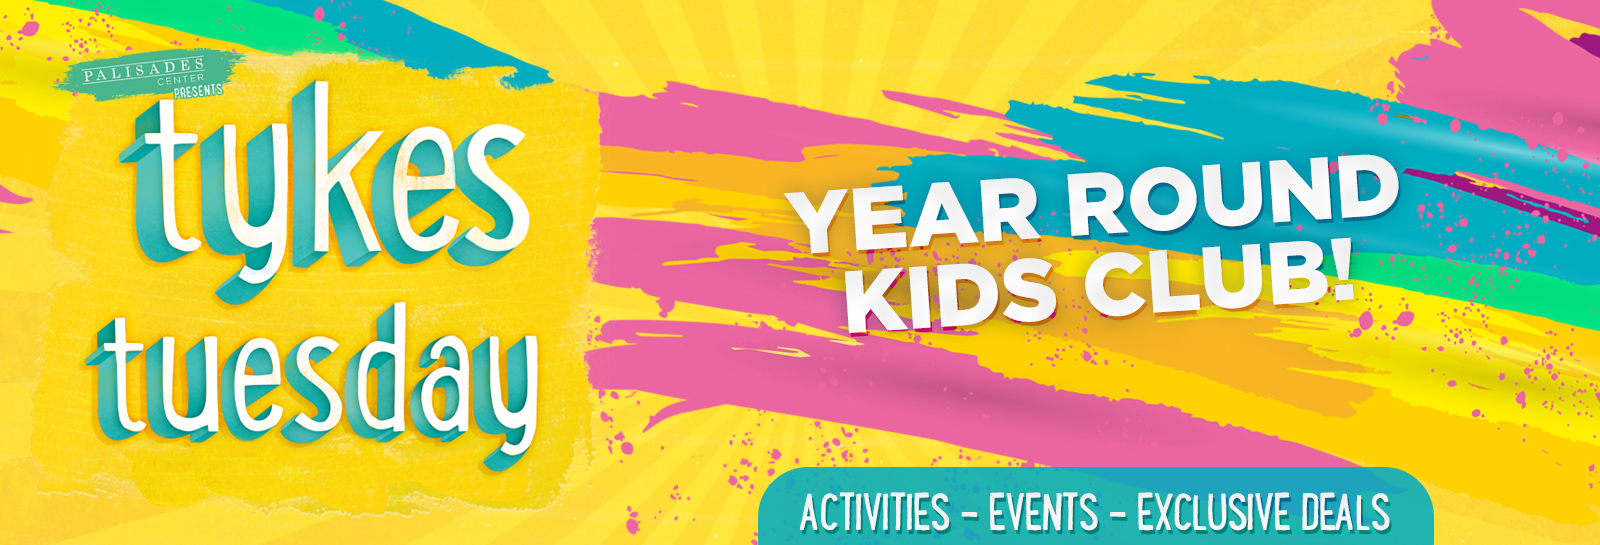 Tykes Tuesdays - Year Round Club! Activities - Events - Exclusive Deals